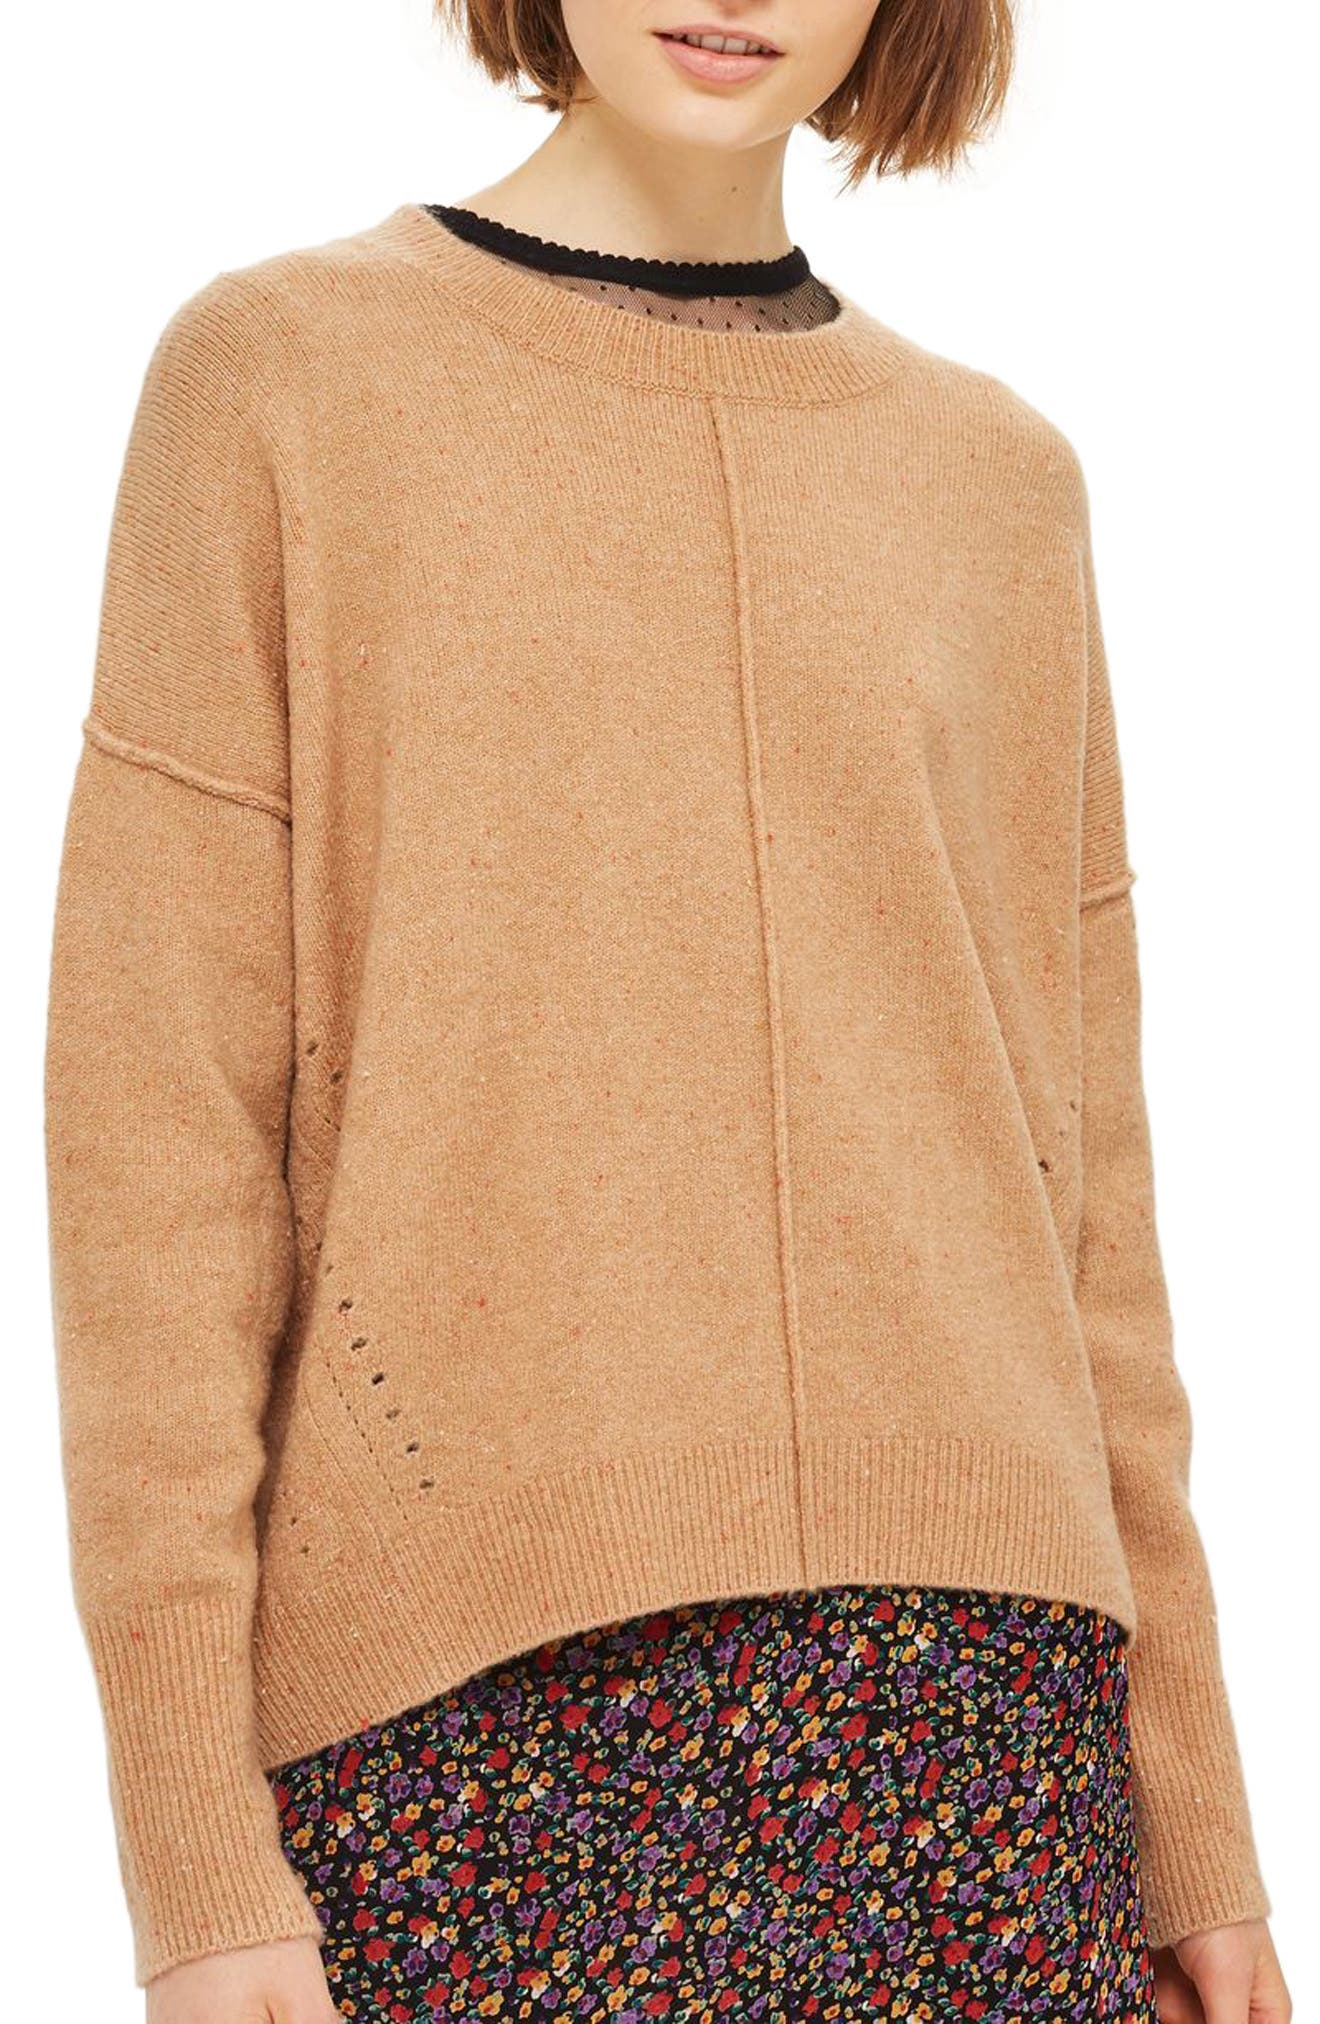 Topshop Pointelle Detail Sweater (Regular & Petite)